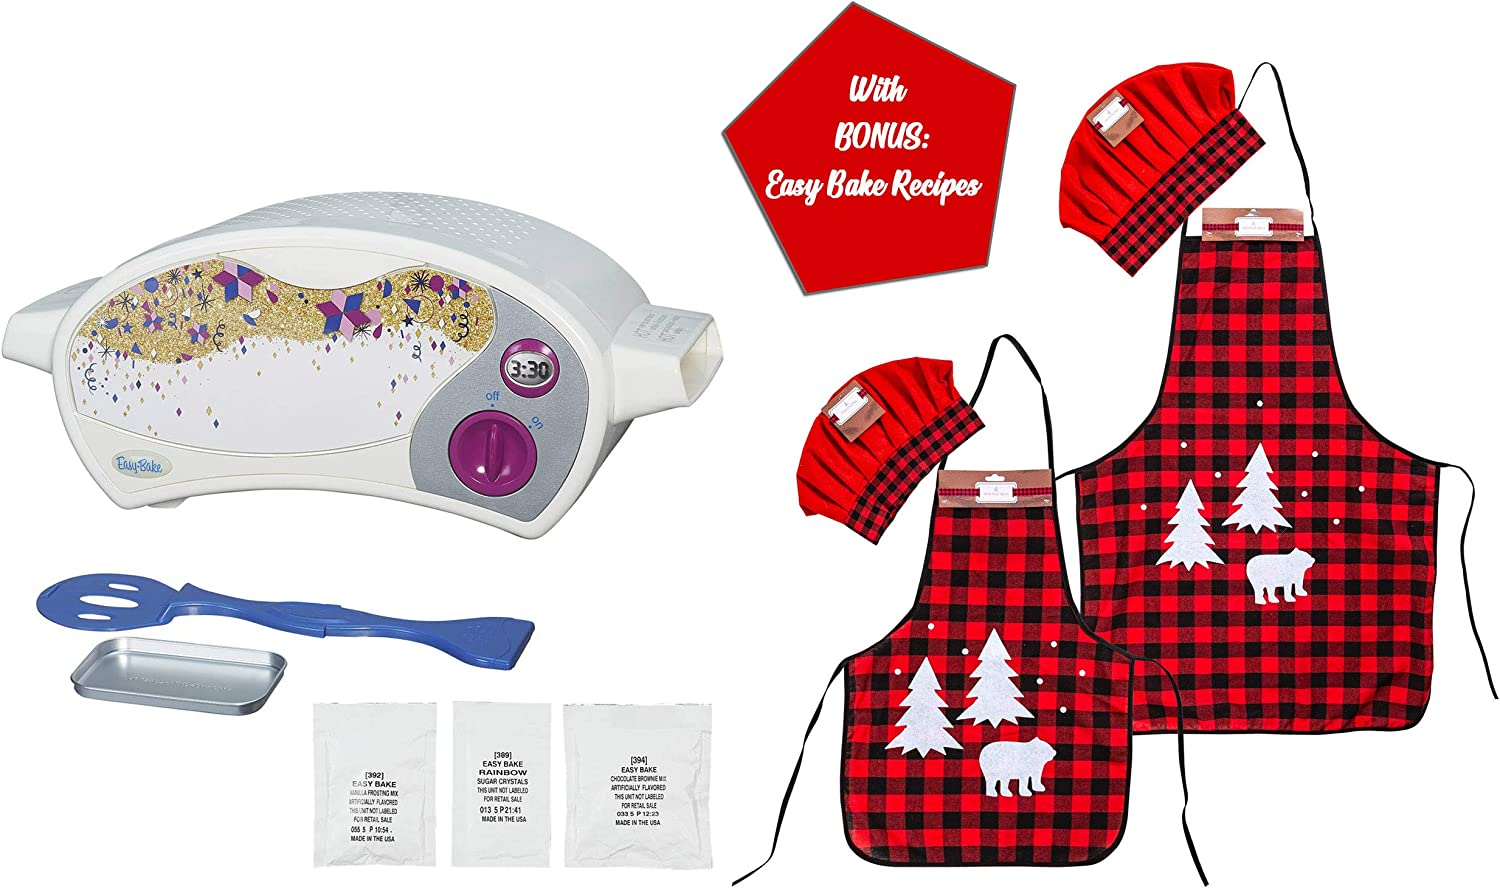 Easy Bake Ultimate Oven with Chef Set Gift Bundles for Boys and Girls, Little Chef Gifts, Aprons Sets for Children, Kids Holiday Presents (Oven + Parent & Child Christmas Apron Set)